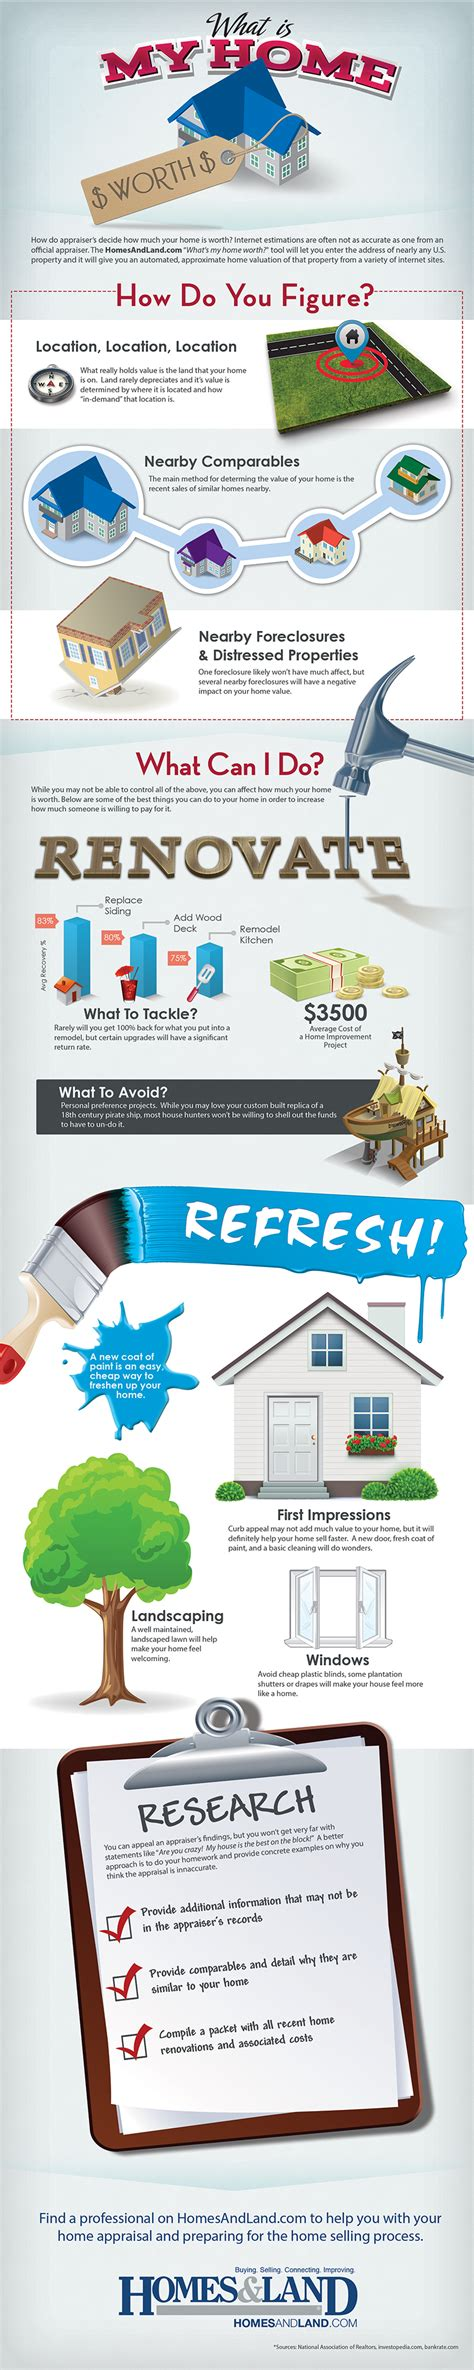 what is my house worth infographic homes land s